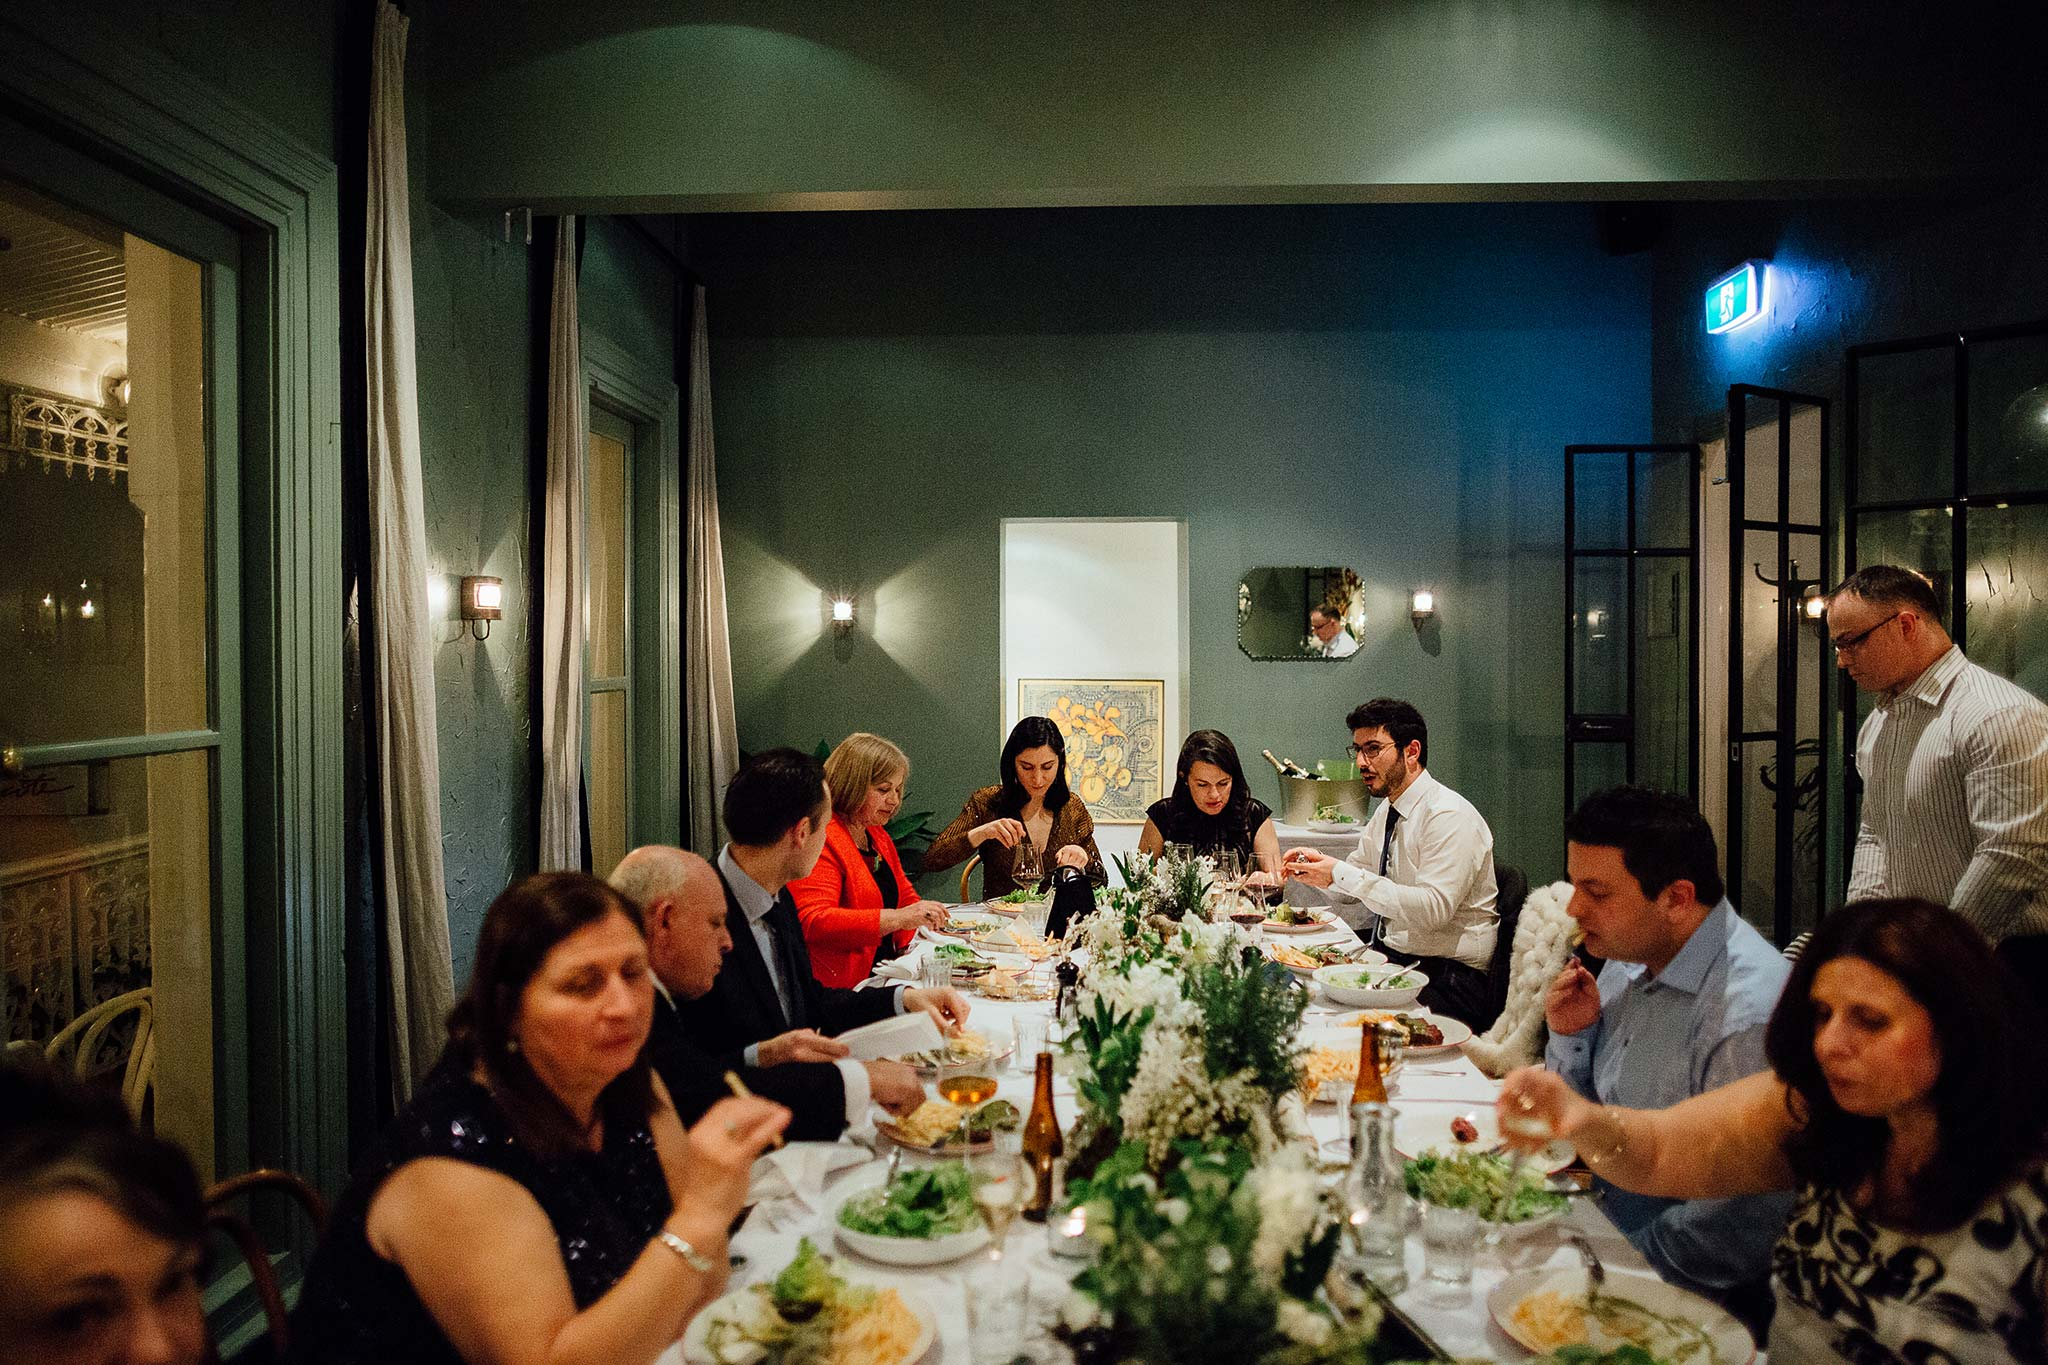 melbourne-entrecote-wedding-reception-private-room